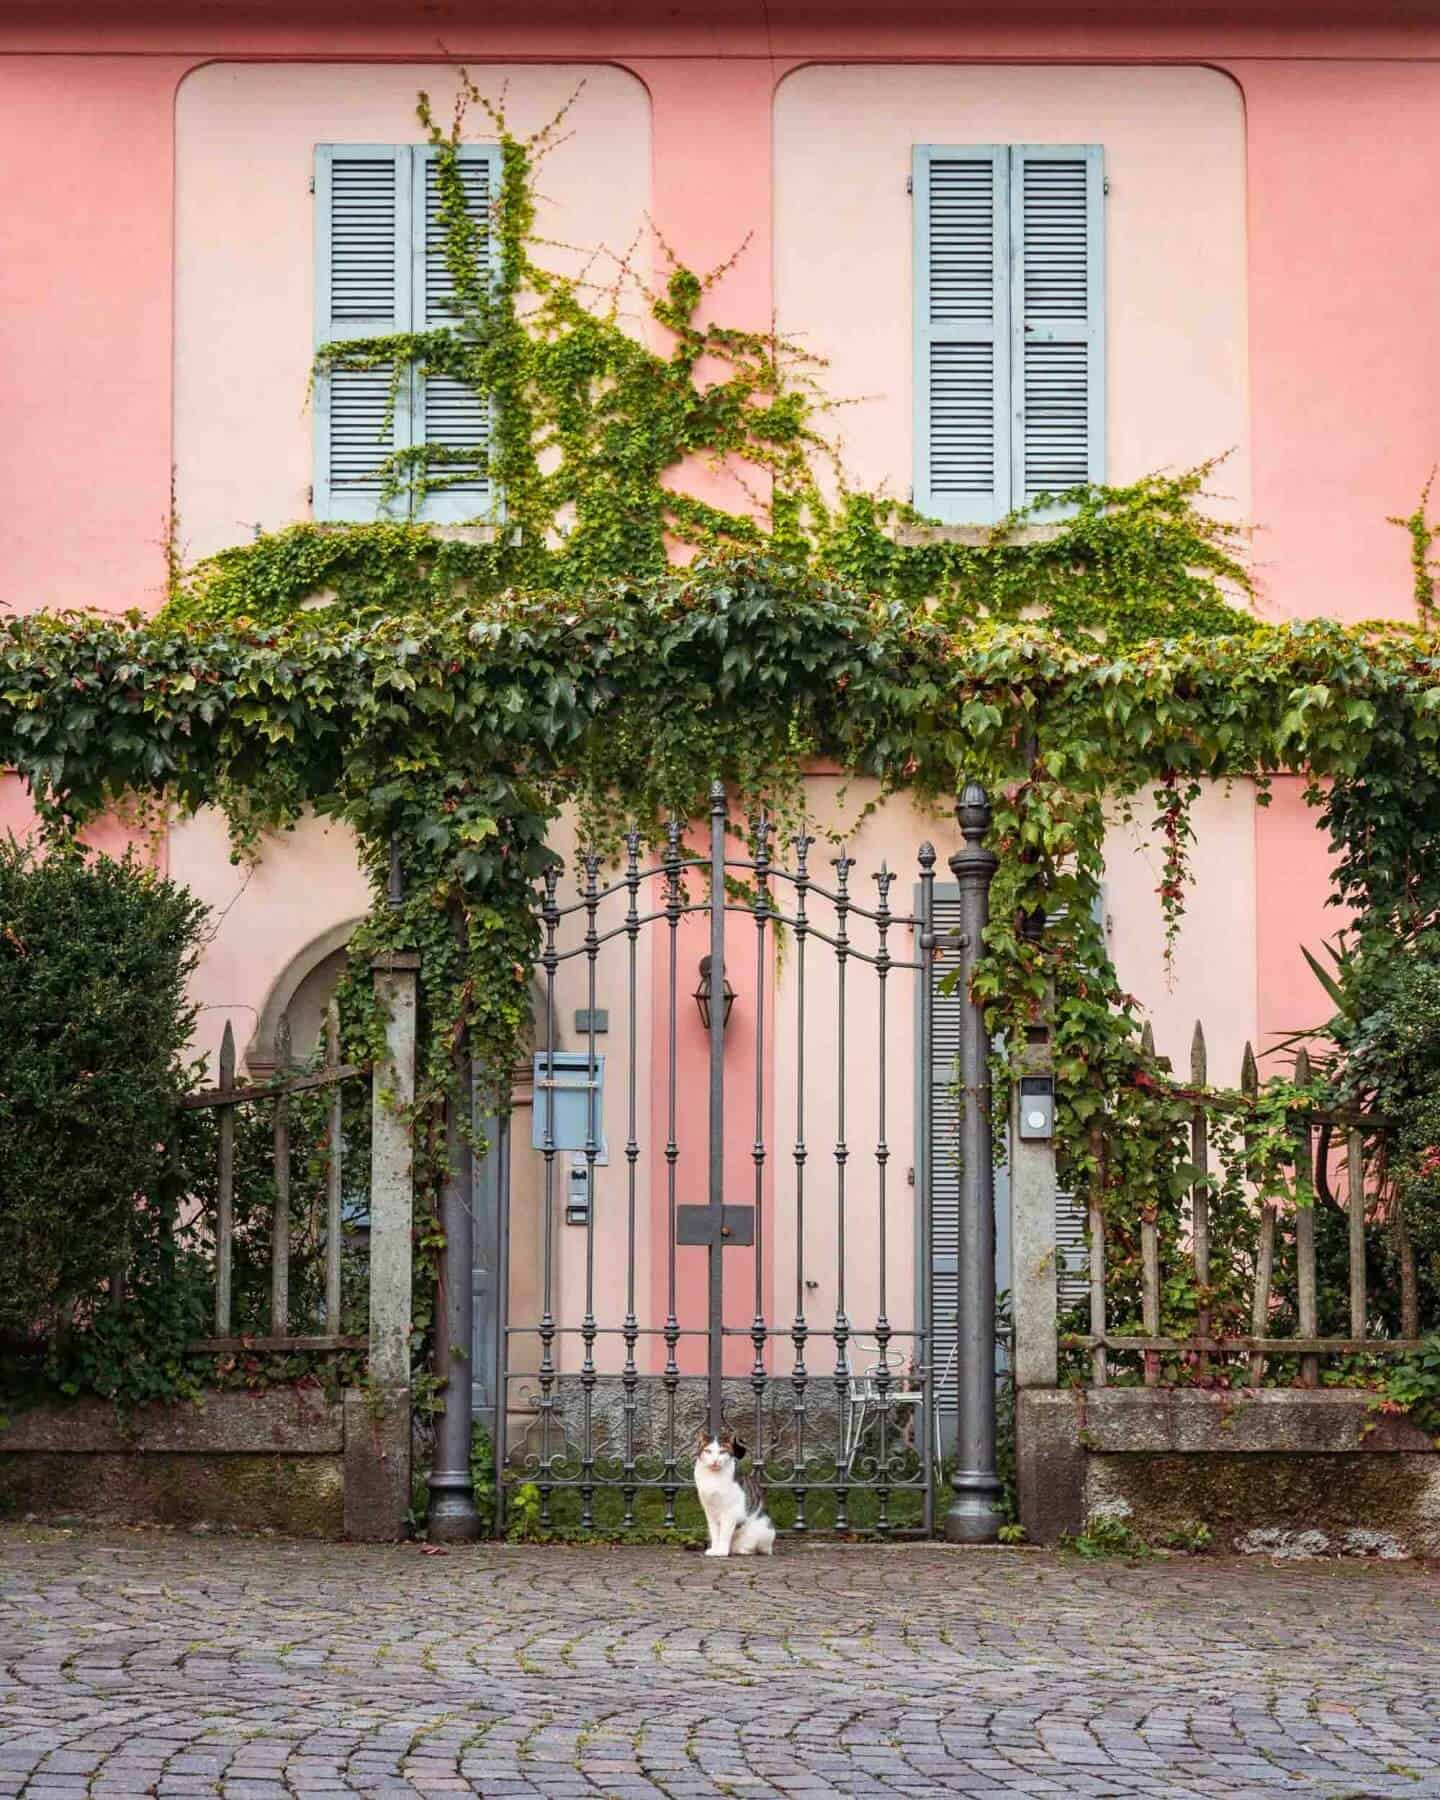 Cat in front of a gate at Piazza San Giorgio, Varenna, Lake Como.